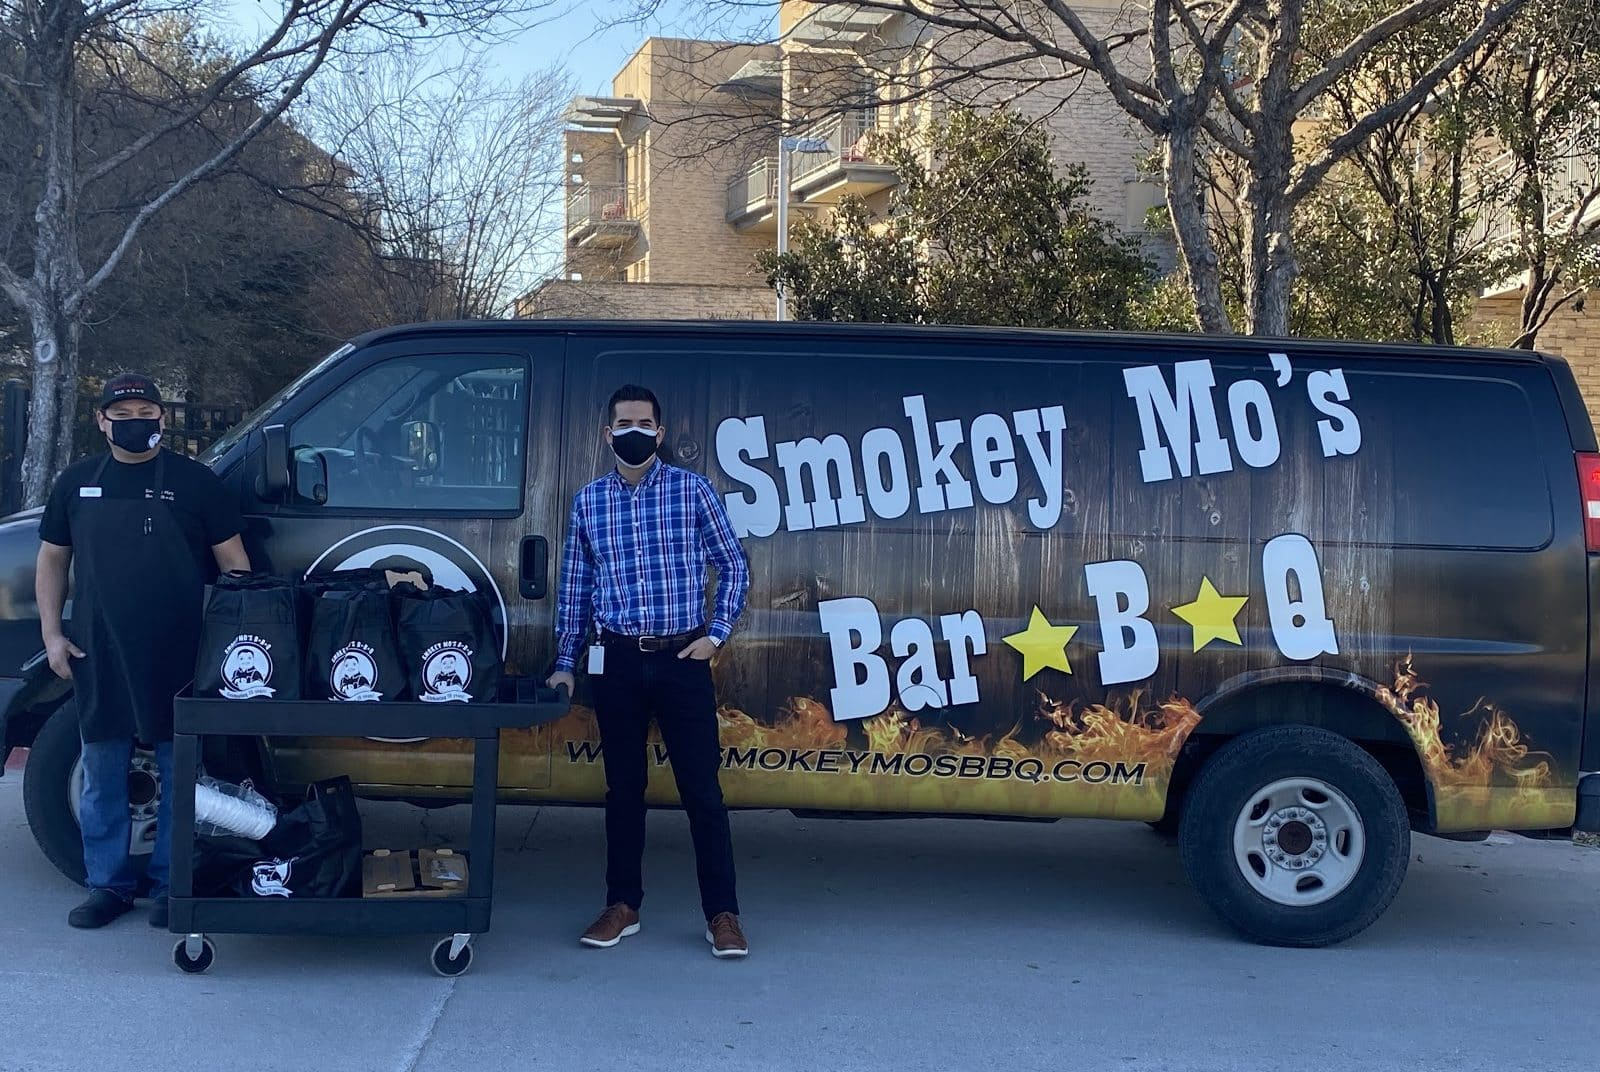 Smokey Mo's van delivering BBQ to Ronald McDonald House, Austin.